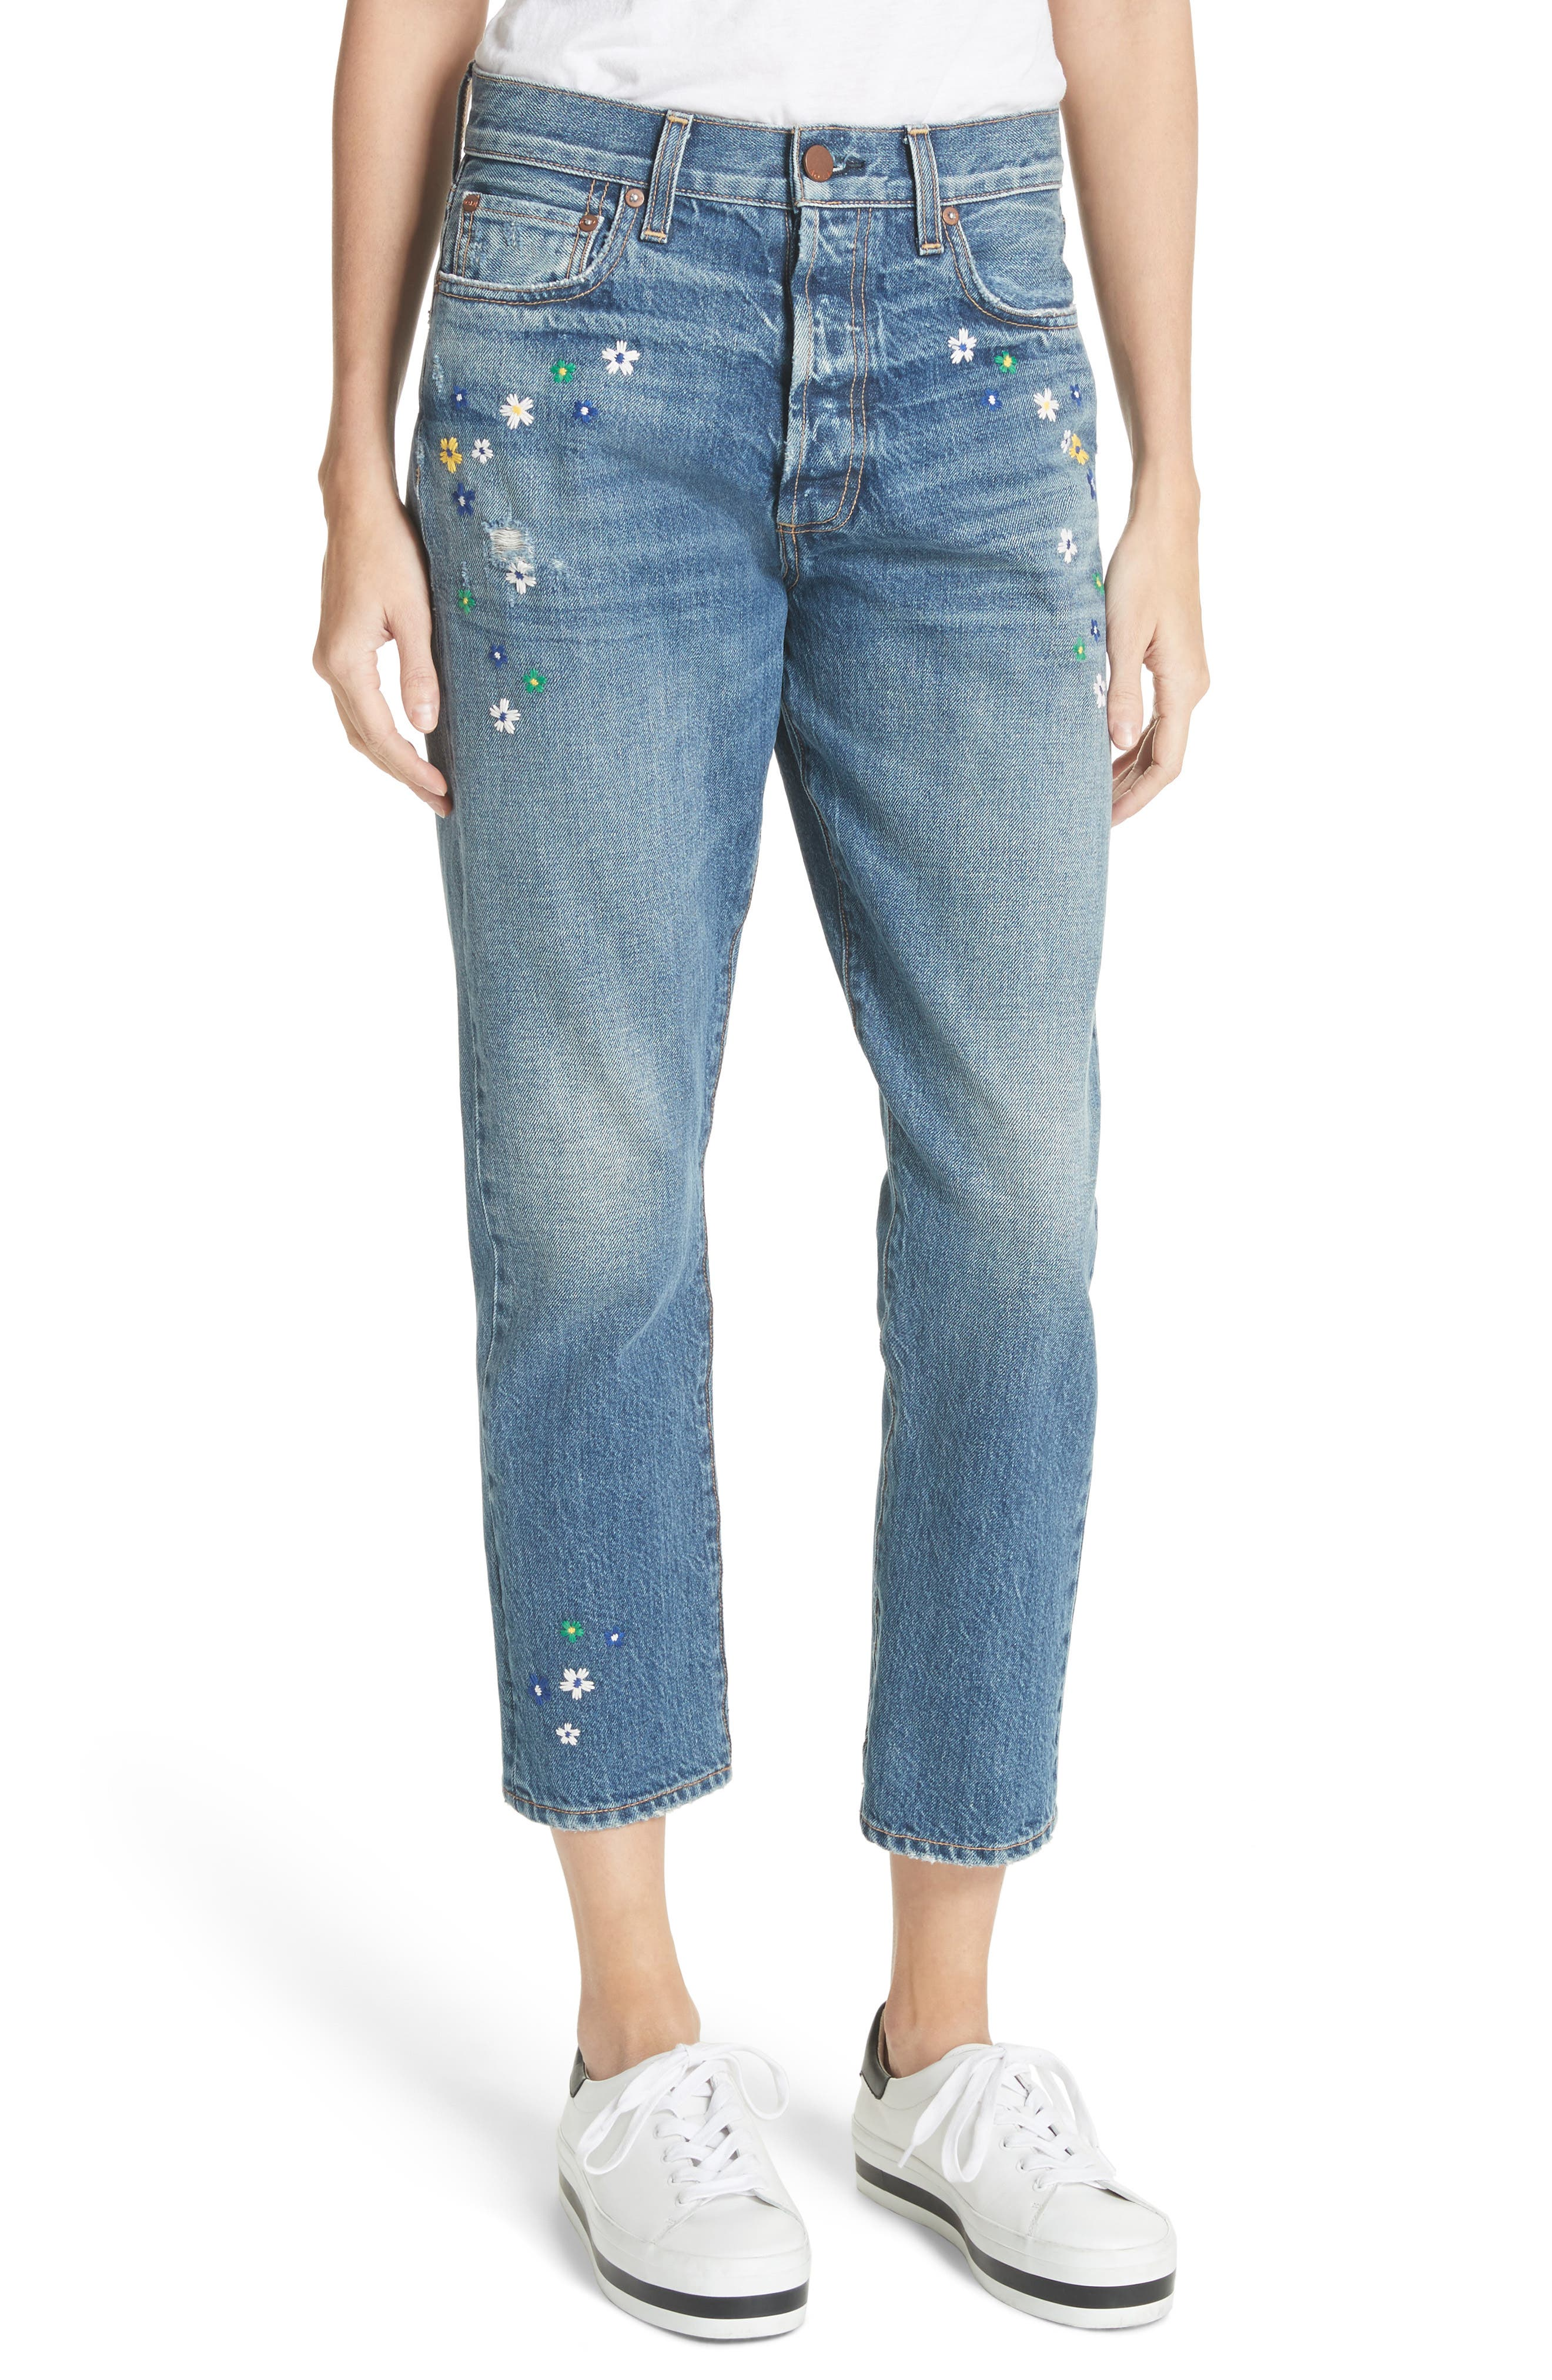 AO.LA Amazing Embroidered Slim Girlfriend Jeans,                             Main thumbnail 1, color,                             496